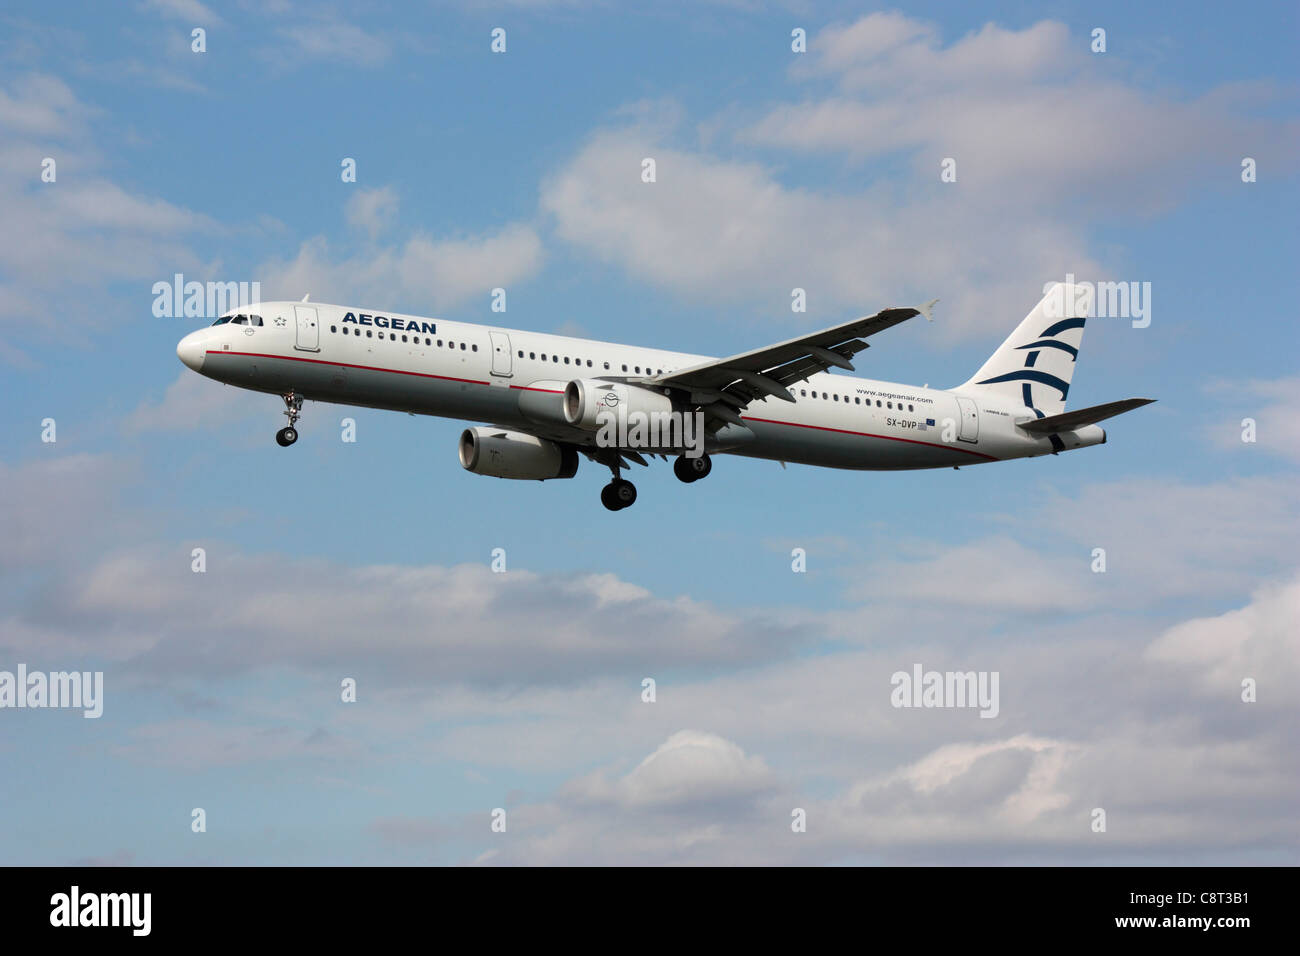 Aegean Airlines Airbus A321 passenger jet plane in flight shortly before arrival - Stock Image